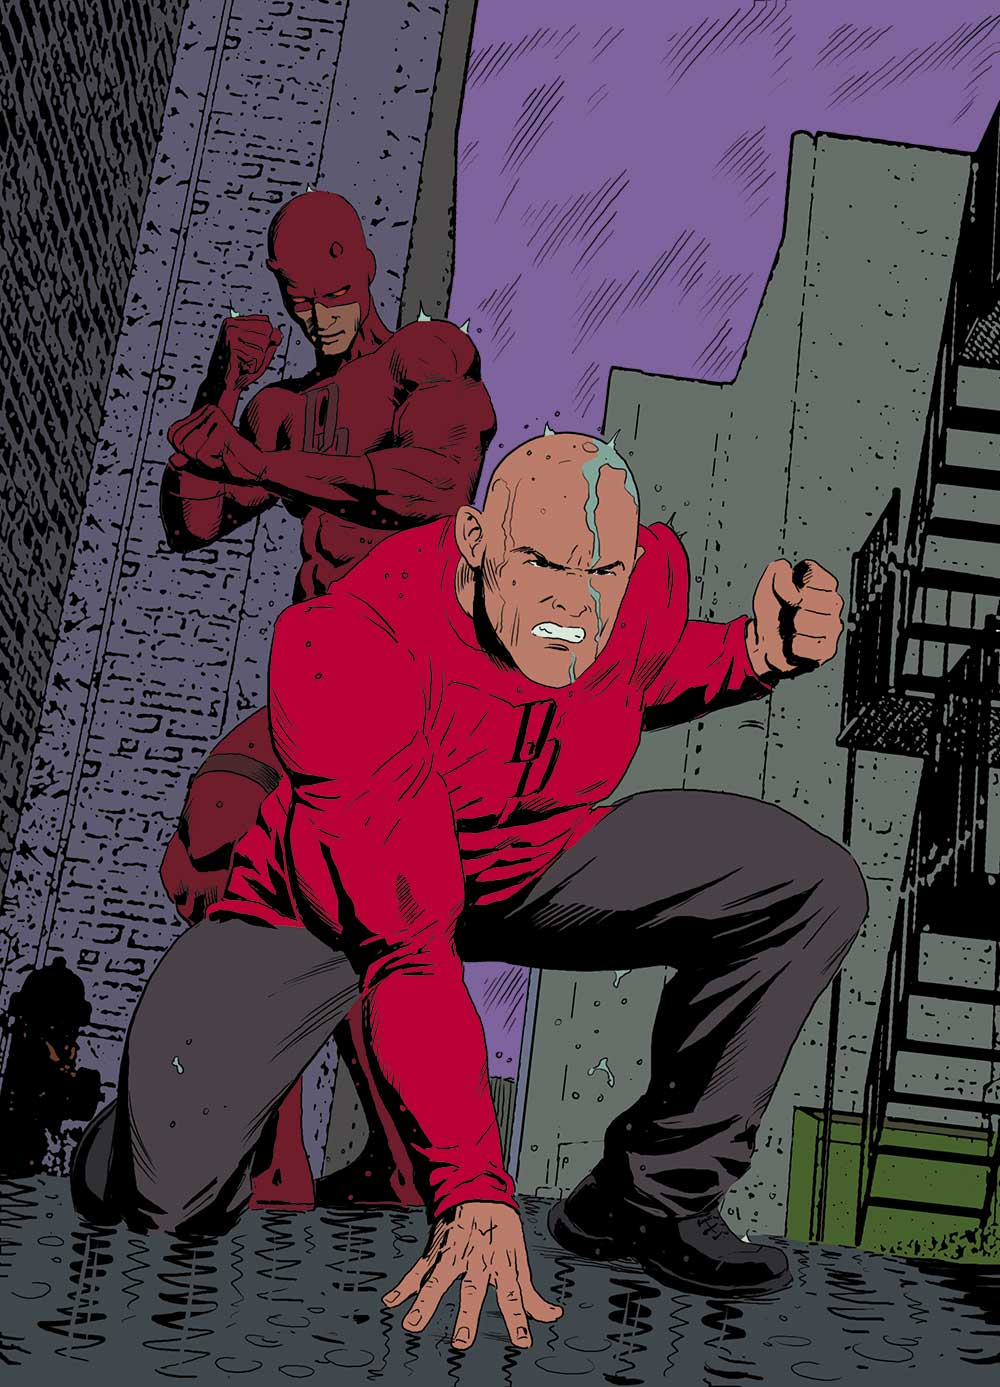 Daredevil-bystander_flats_CC